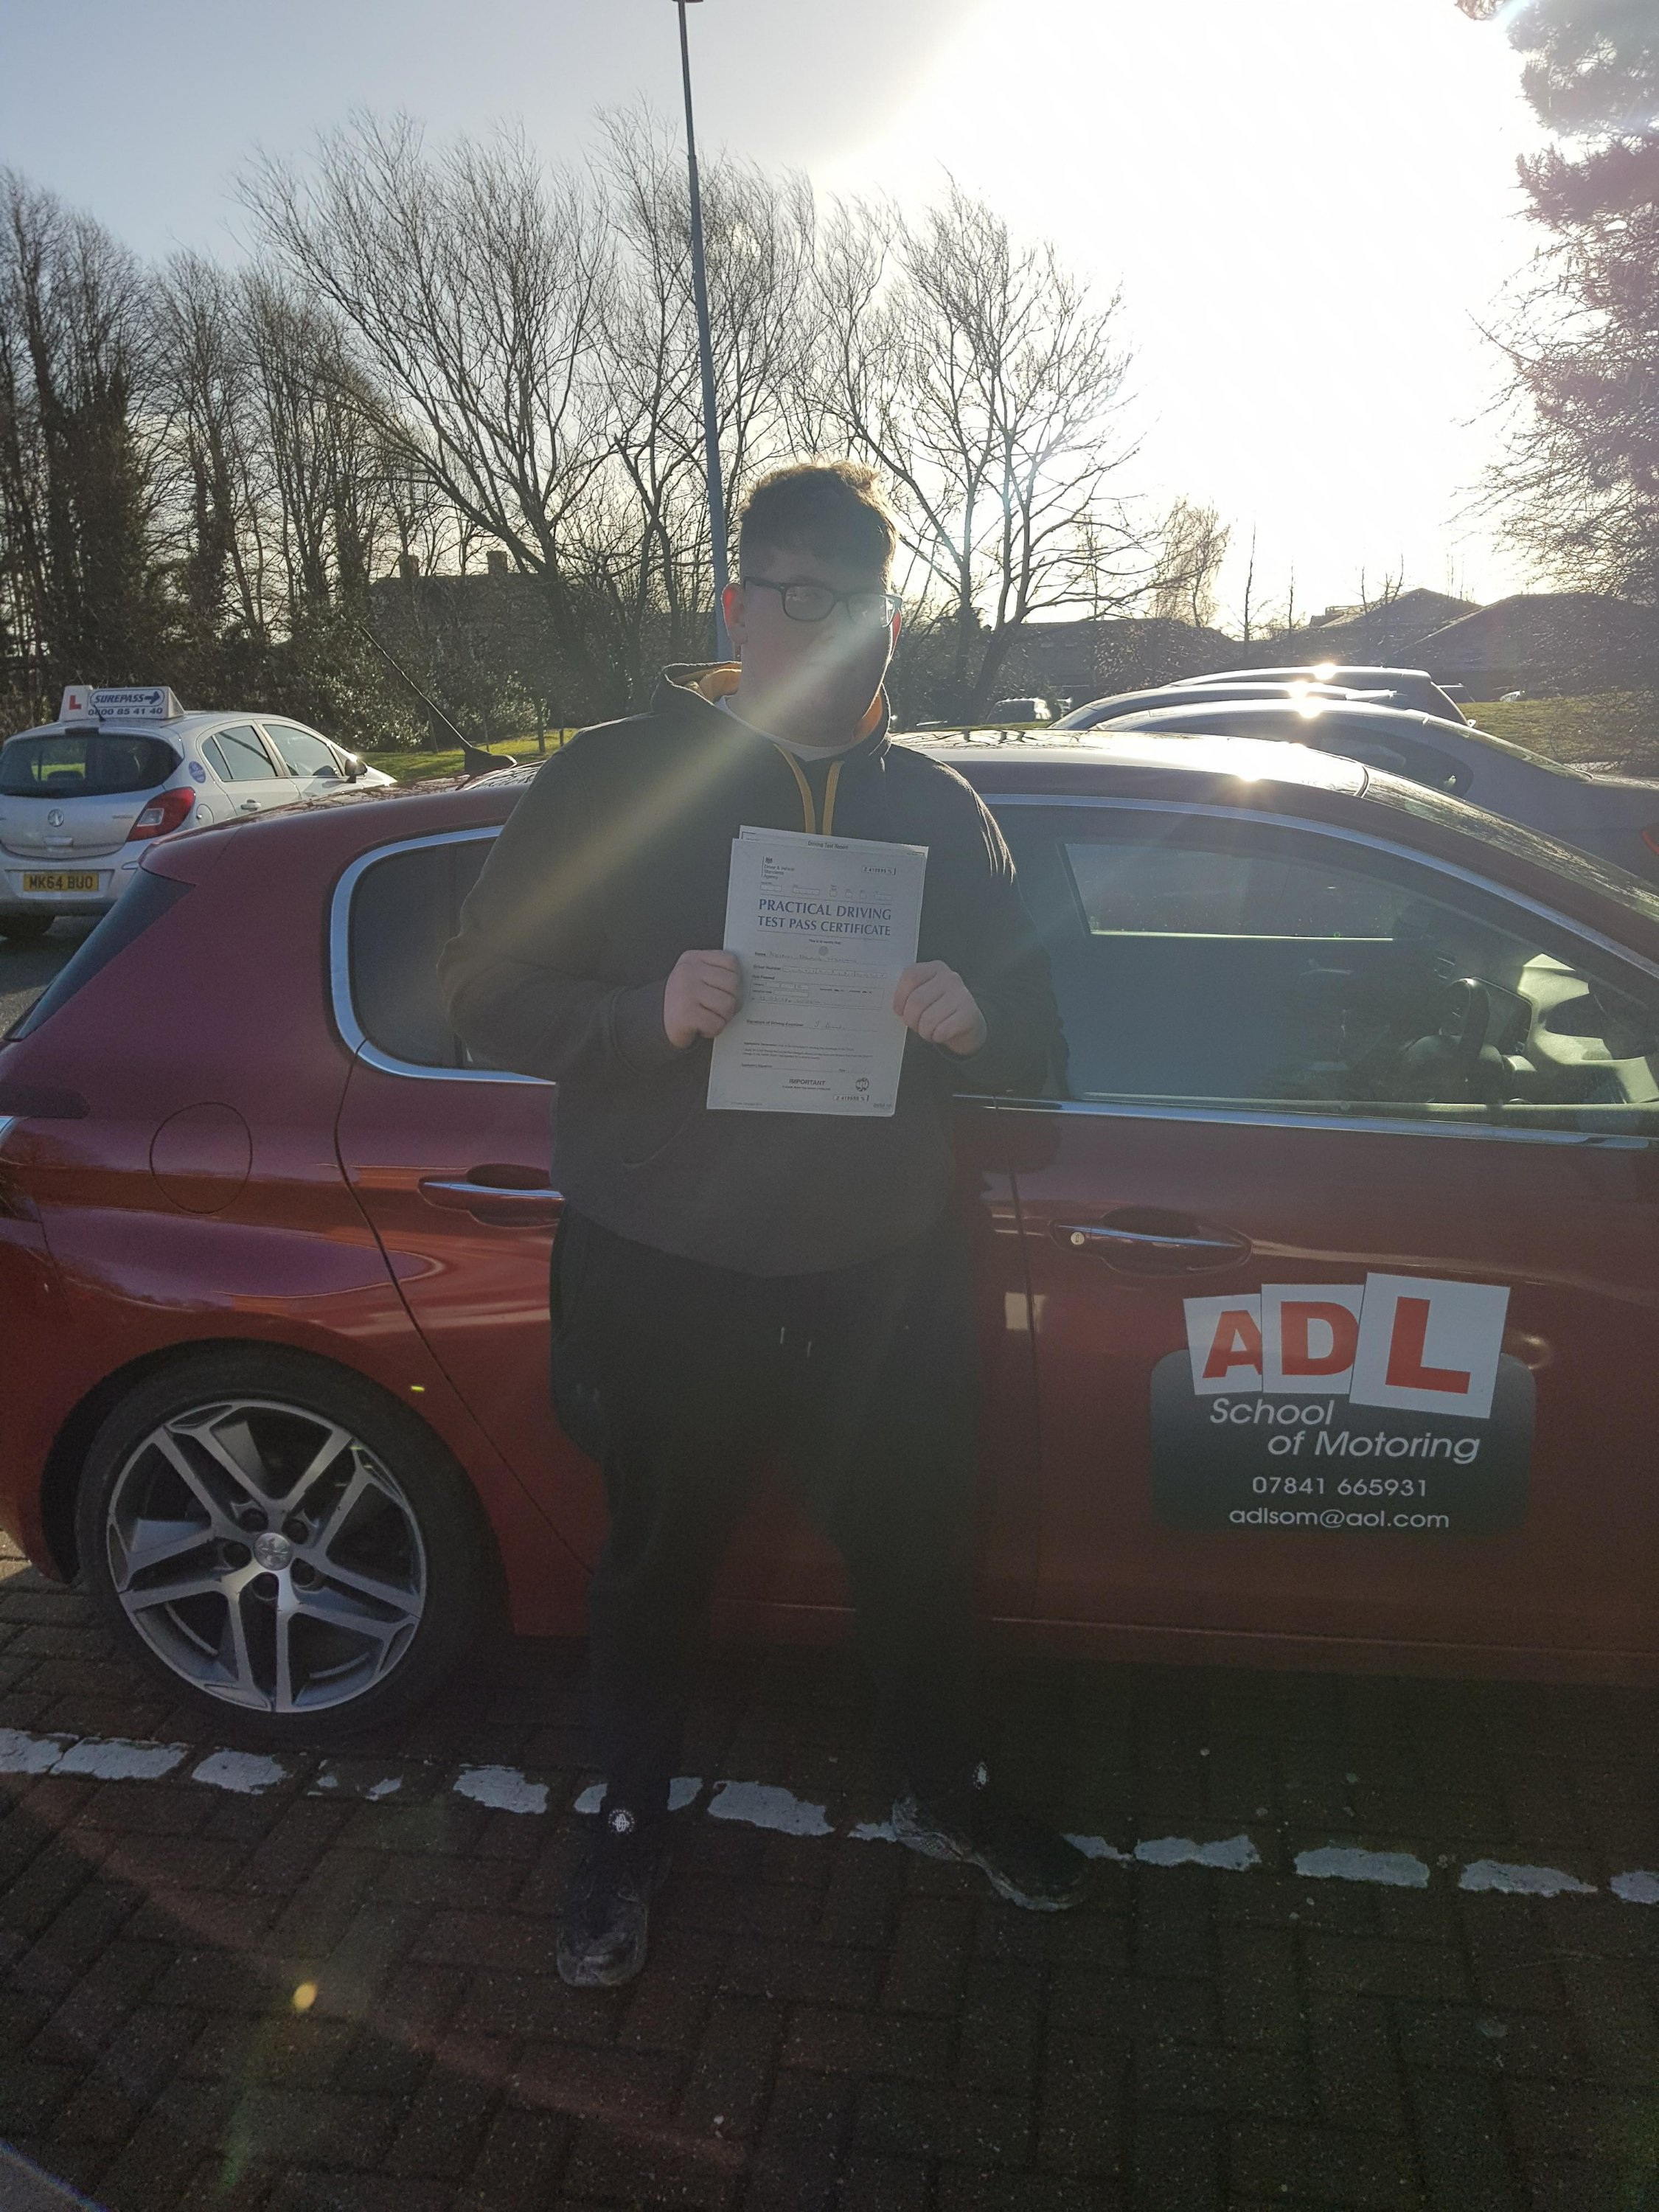 4 test passes in one week for ADL SCHOOL OF MOTORING